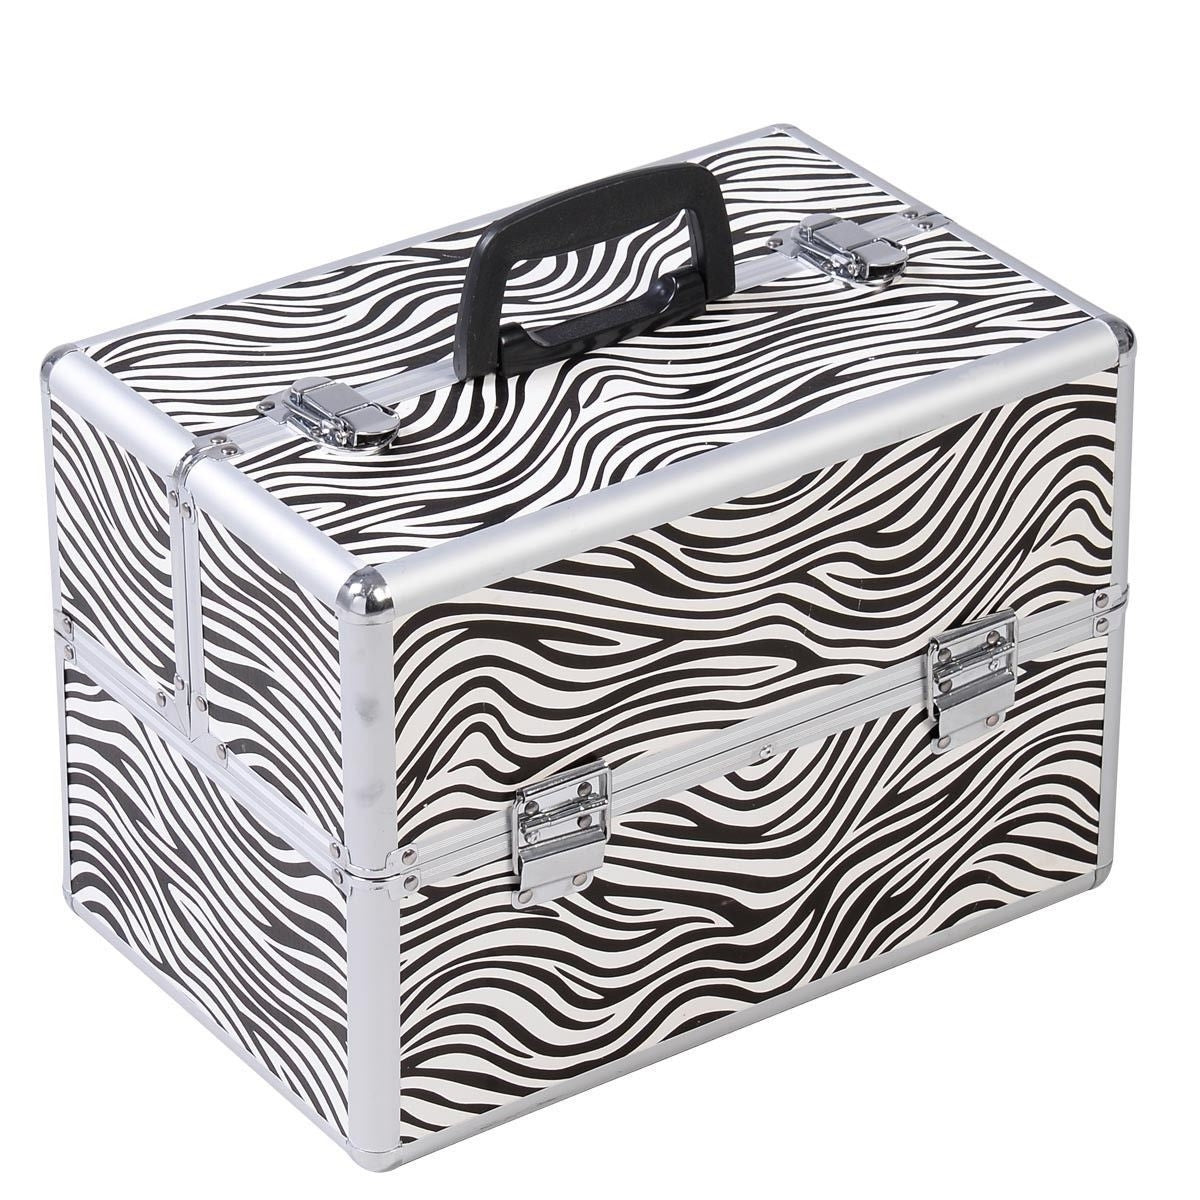 Portable Jewelry Box Makeup Storage Case Organizer in Zebra